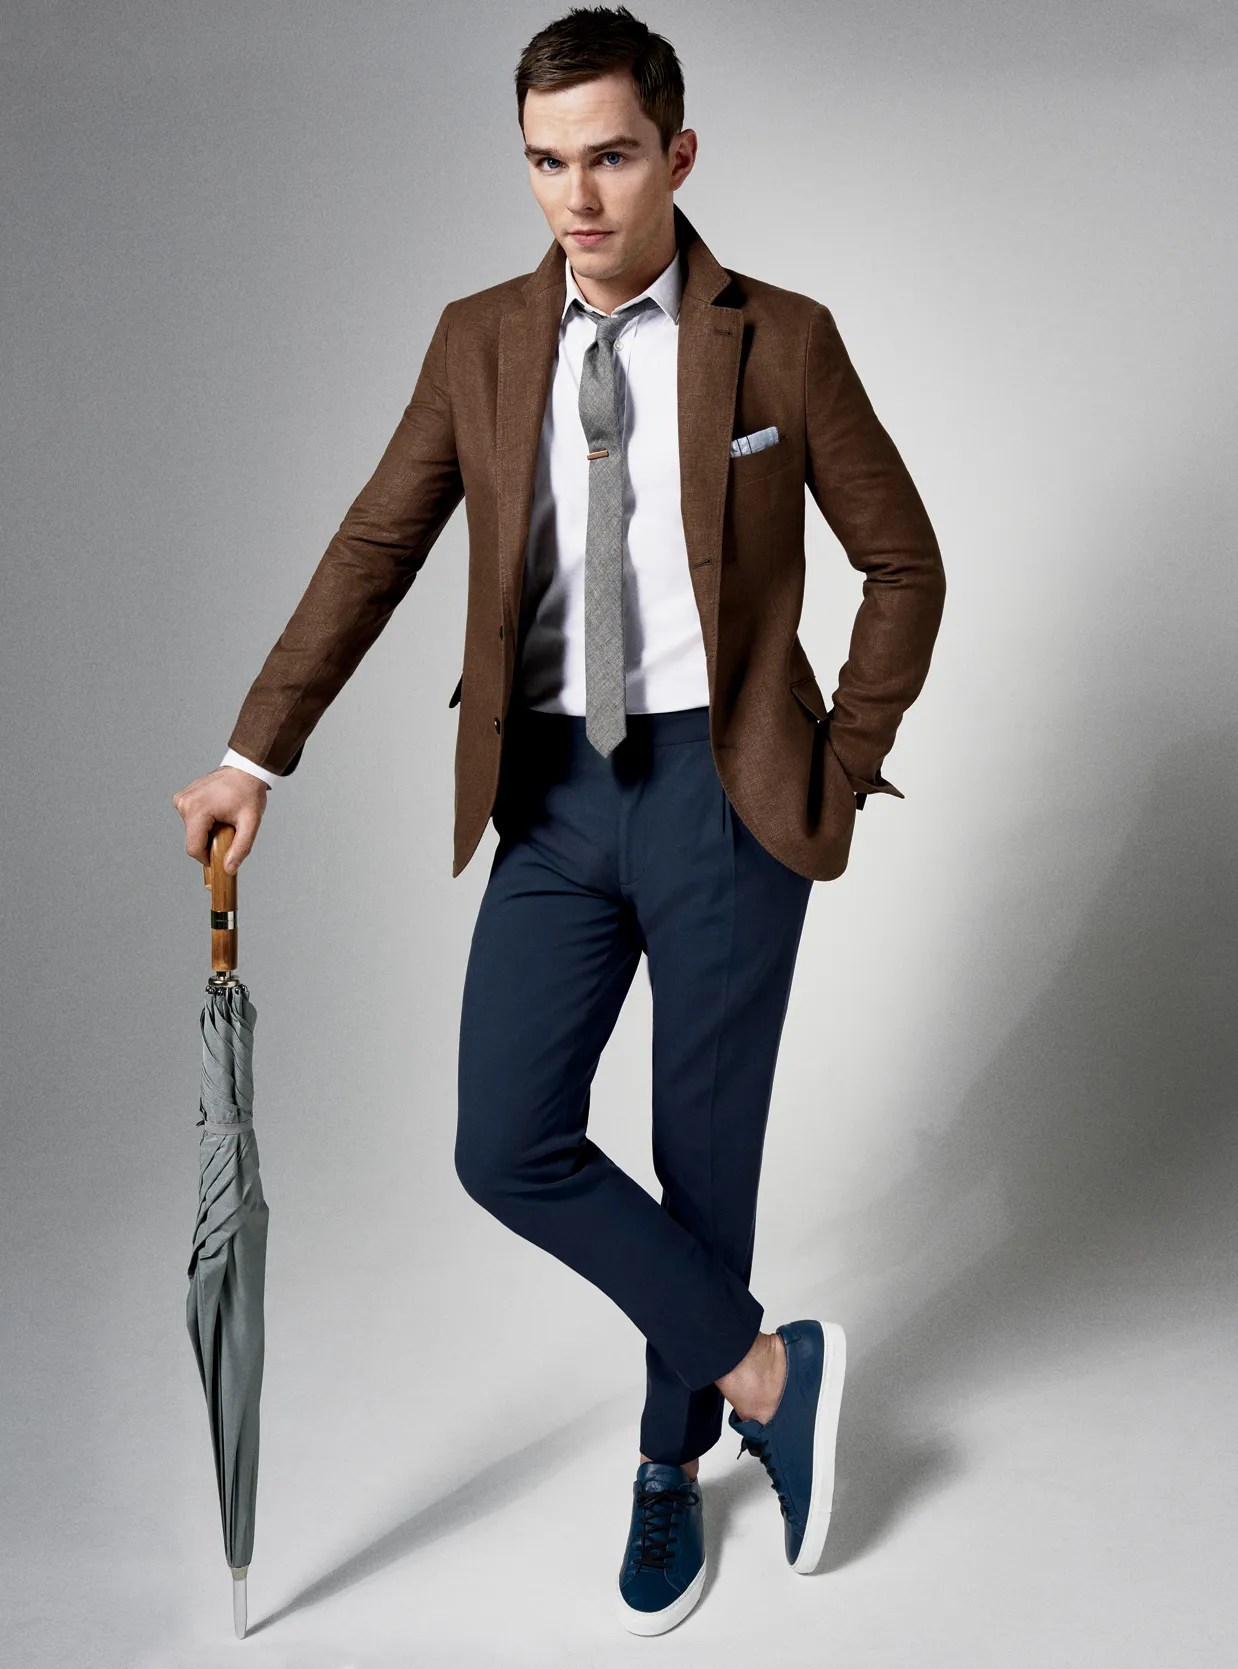 What To Wear Today April Photos GQ